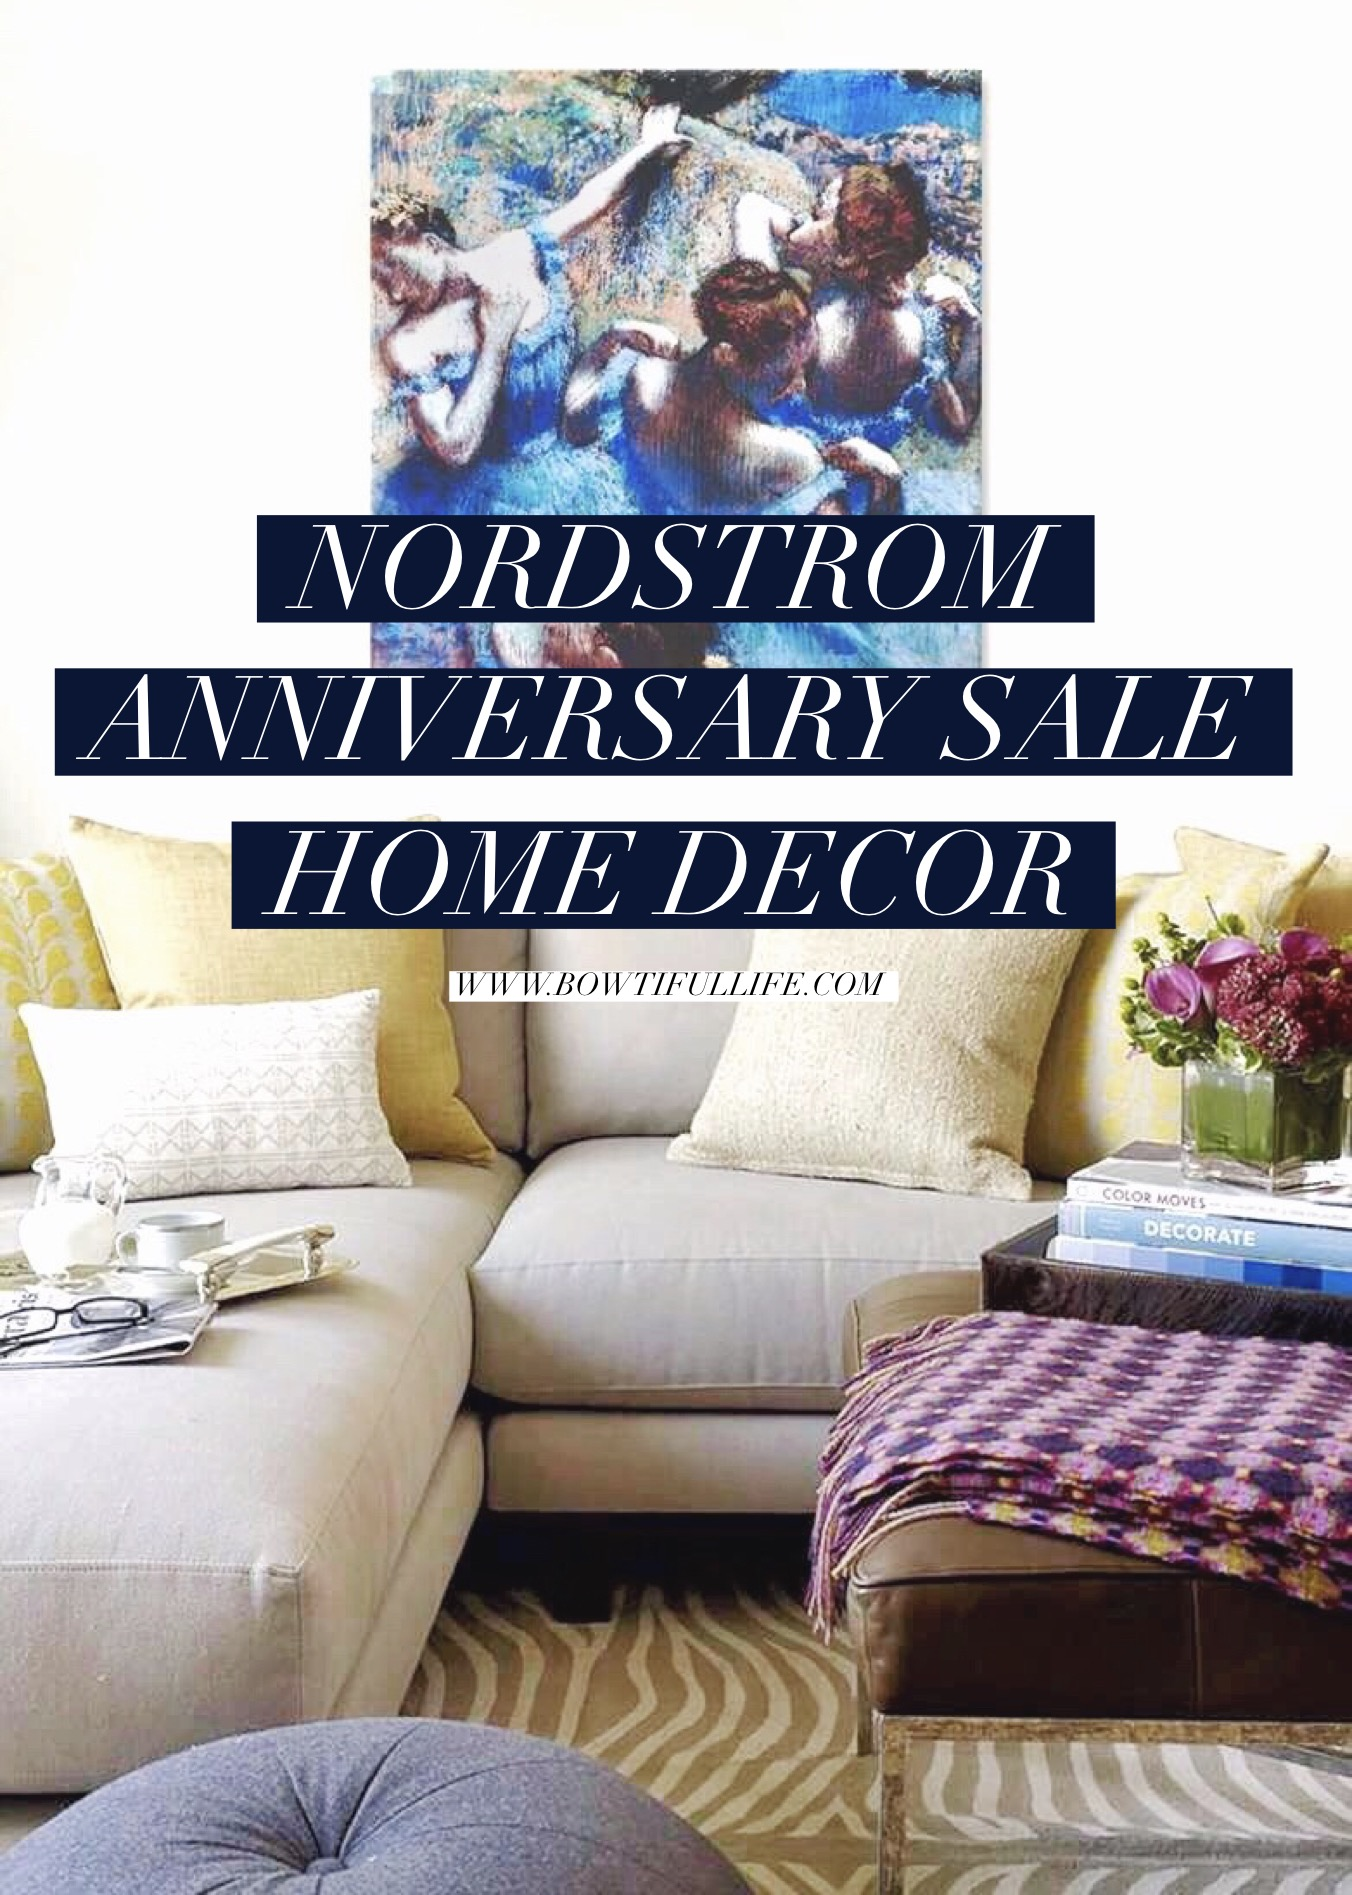 Nordstrom Anniversary Sale: Home Decor - Bowtiful Life